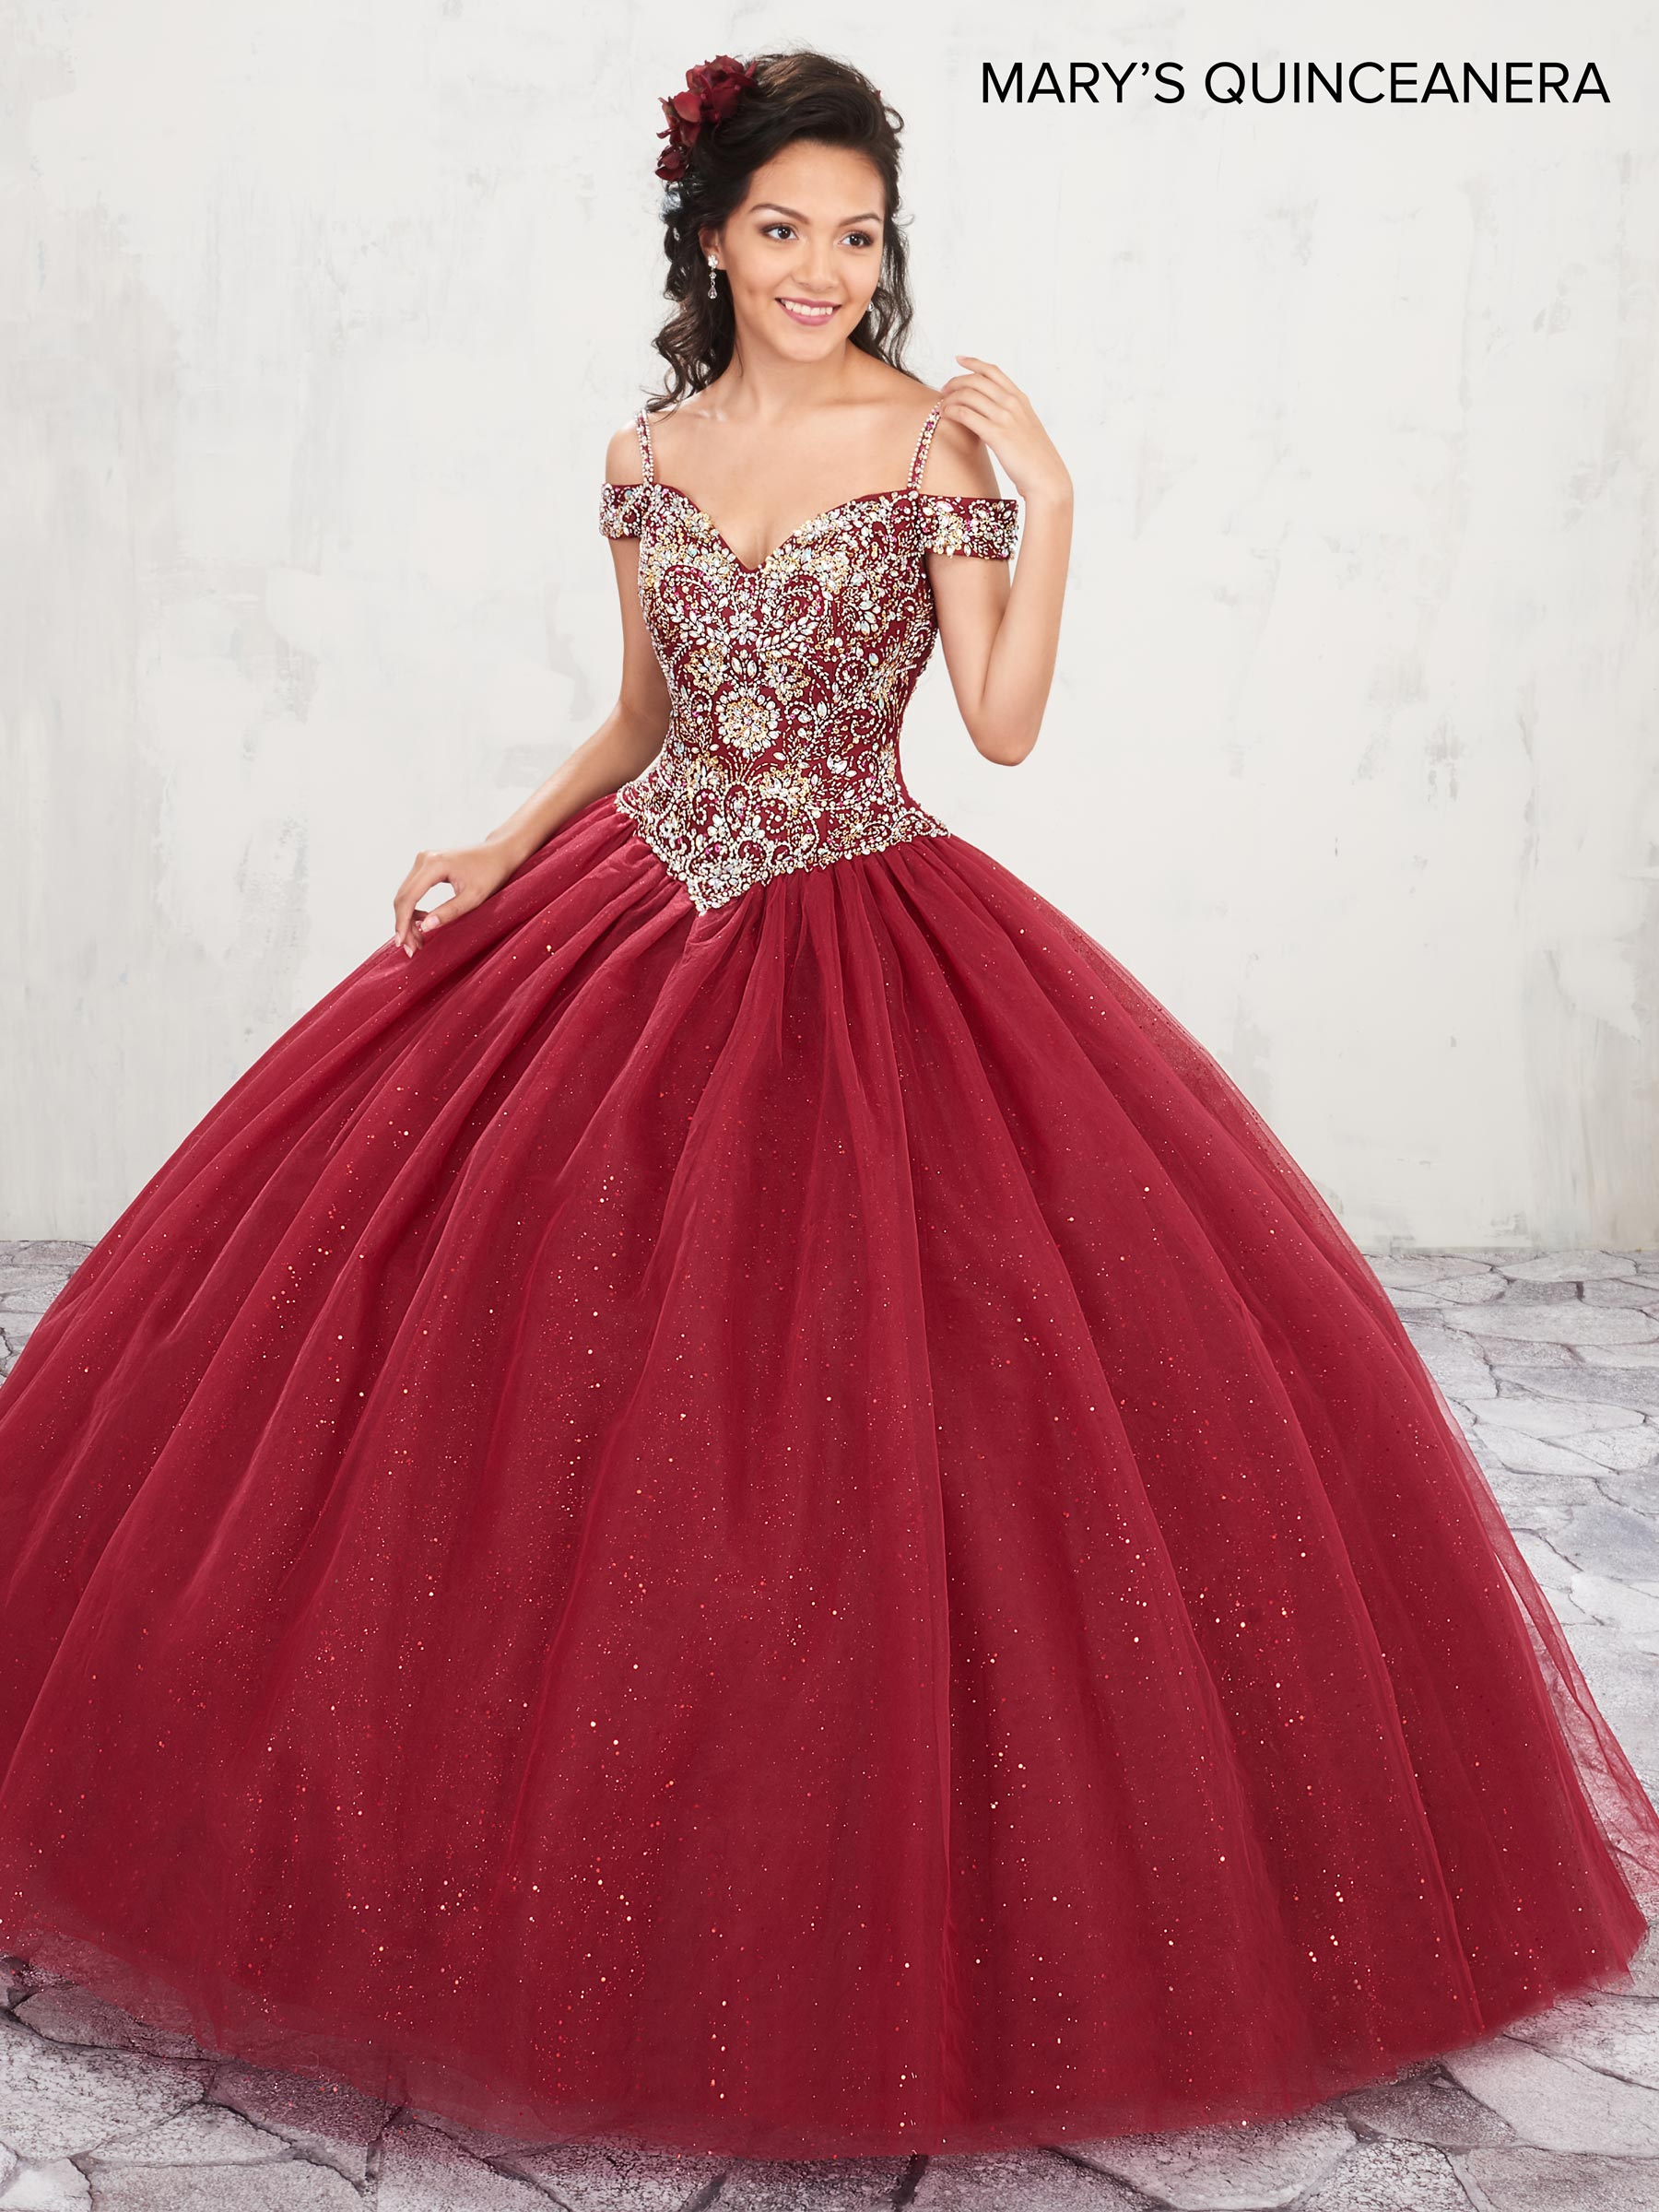 Marys Quinceanera Dresses | Mary's Quinceanera | Style - MQ1001